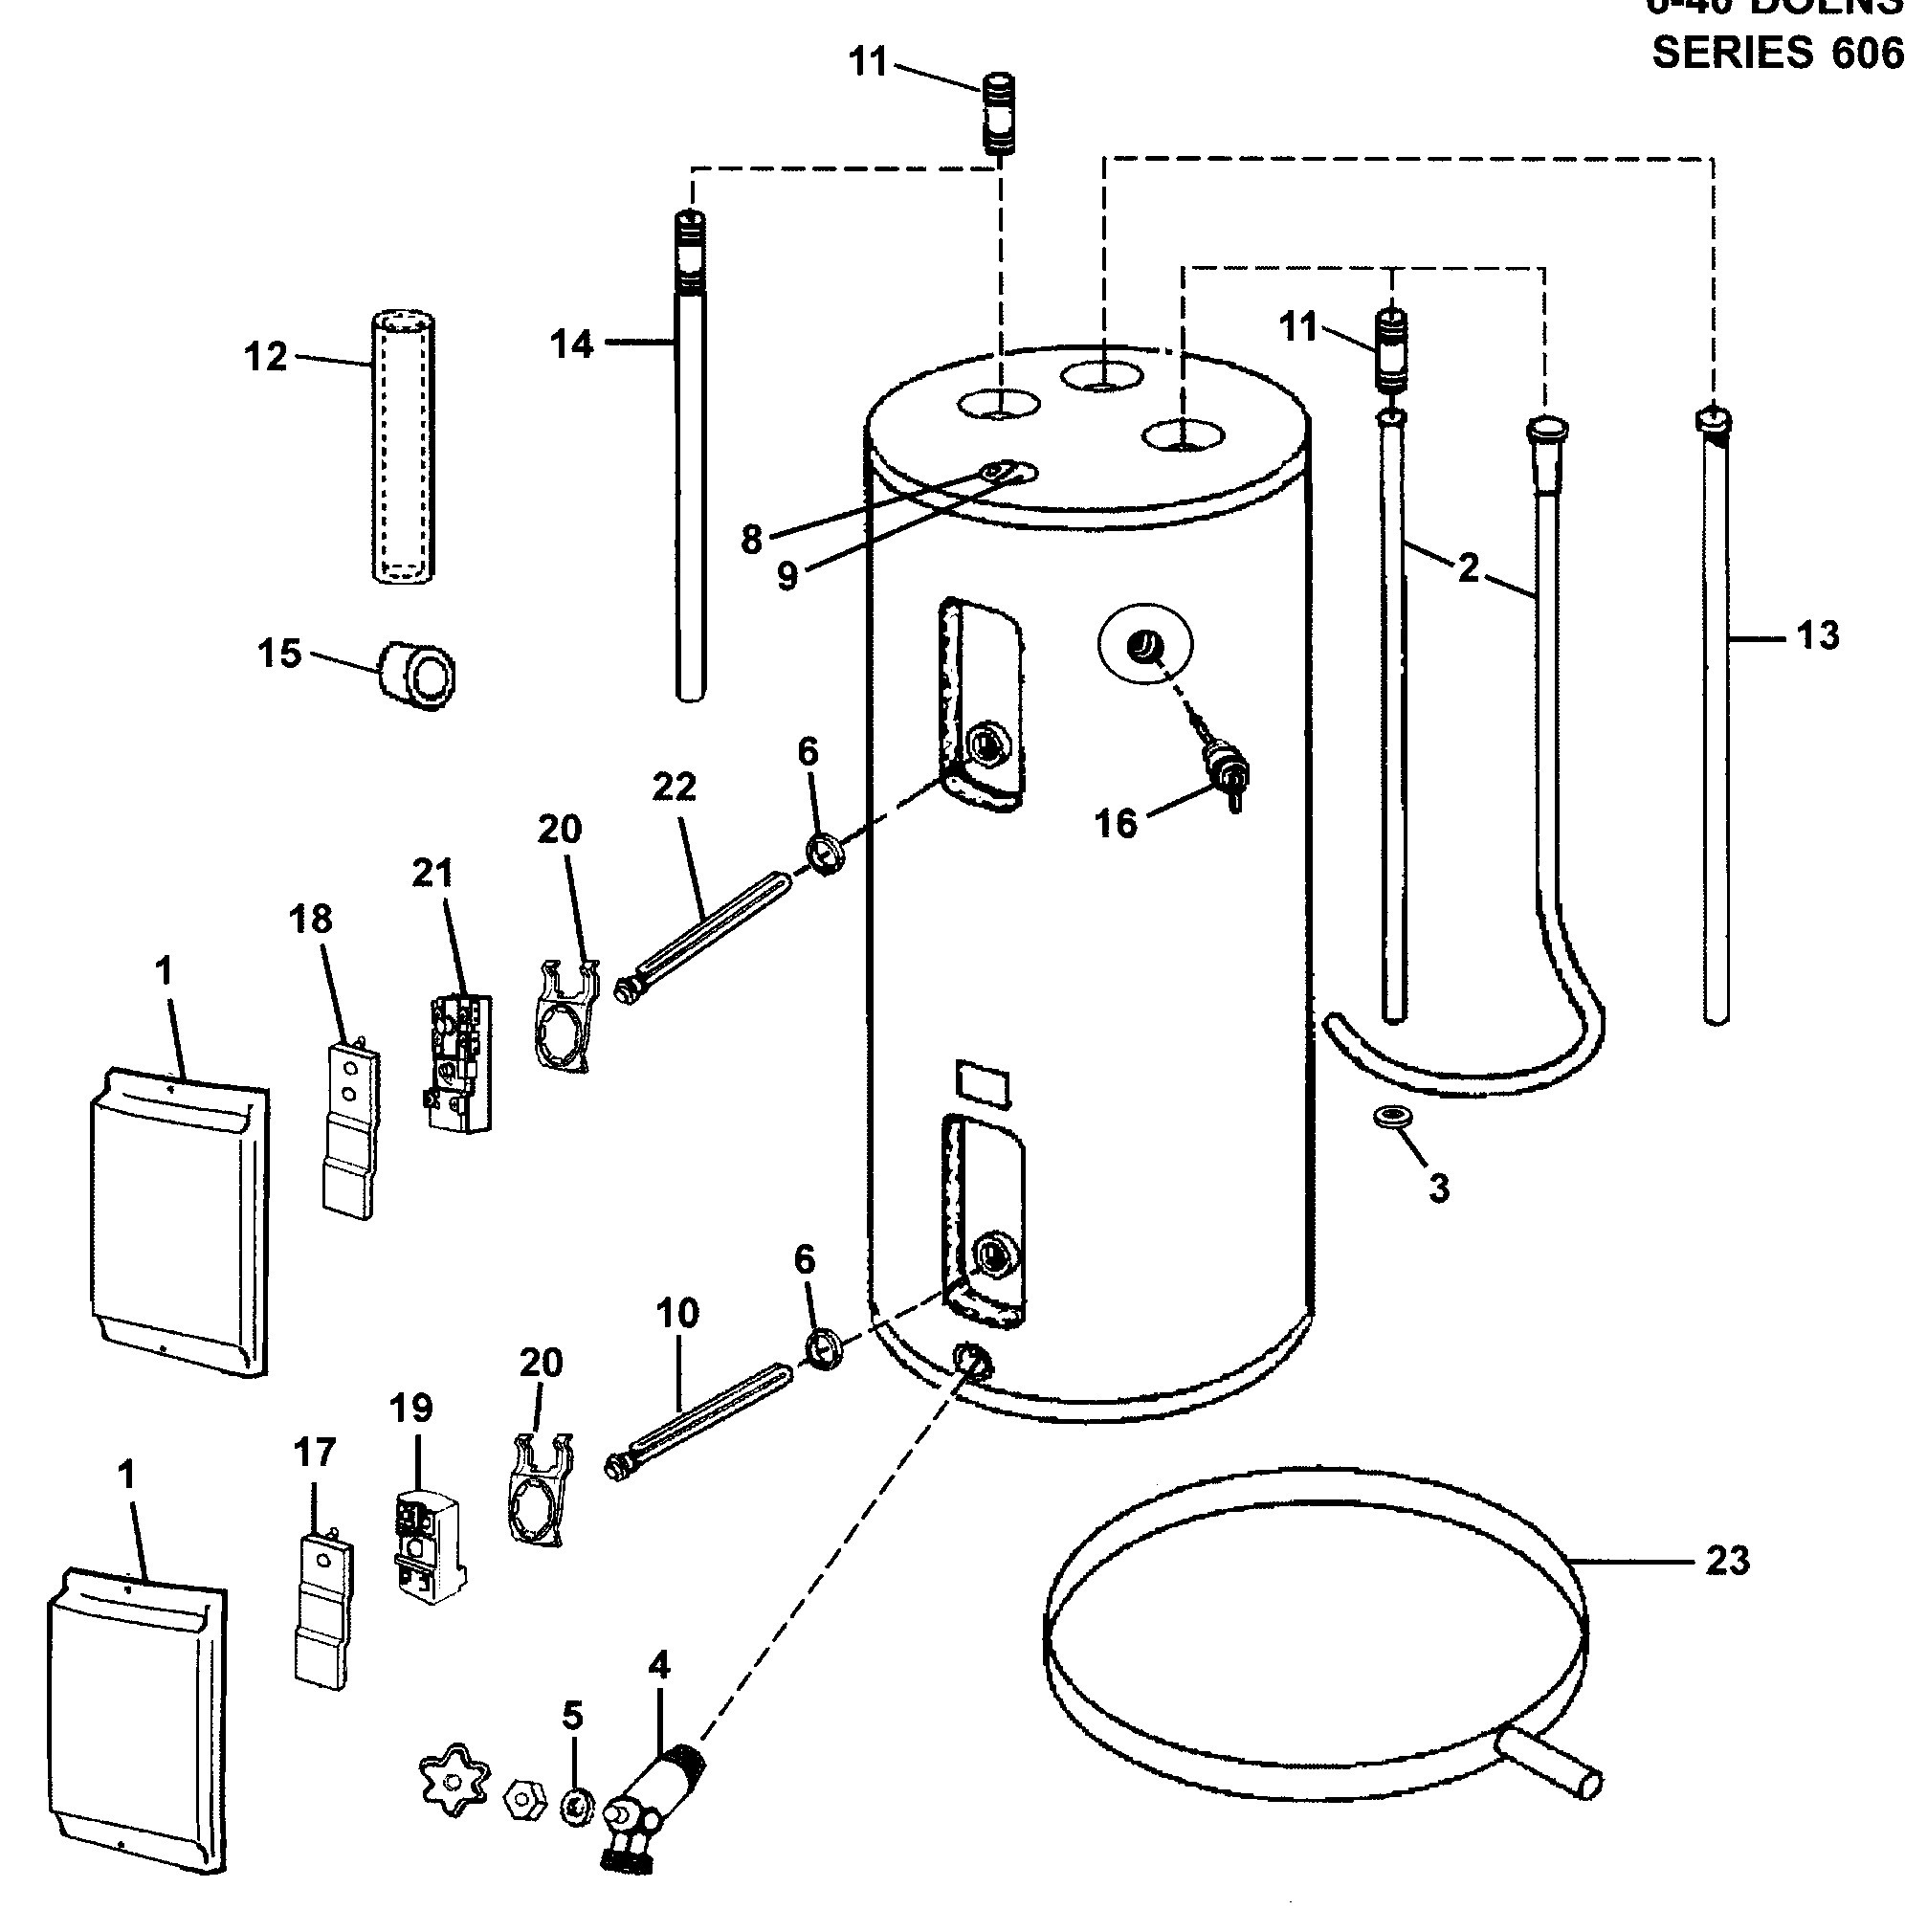 electric water heater wiring diagram Collection-Wiring Diagram Electric Water Heater New Electric Water Heater Parts Diagram 5-c